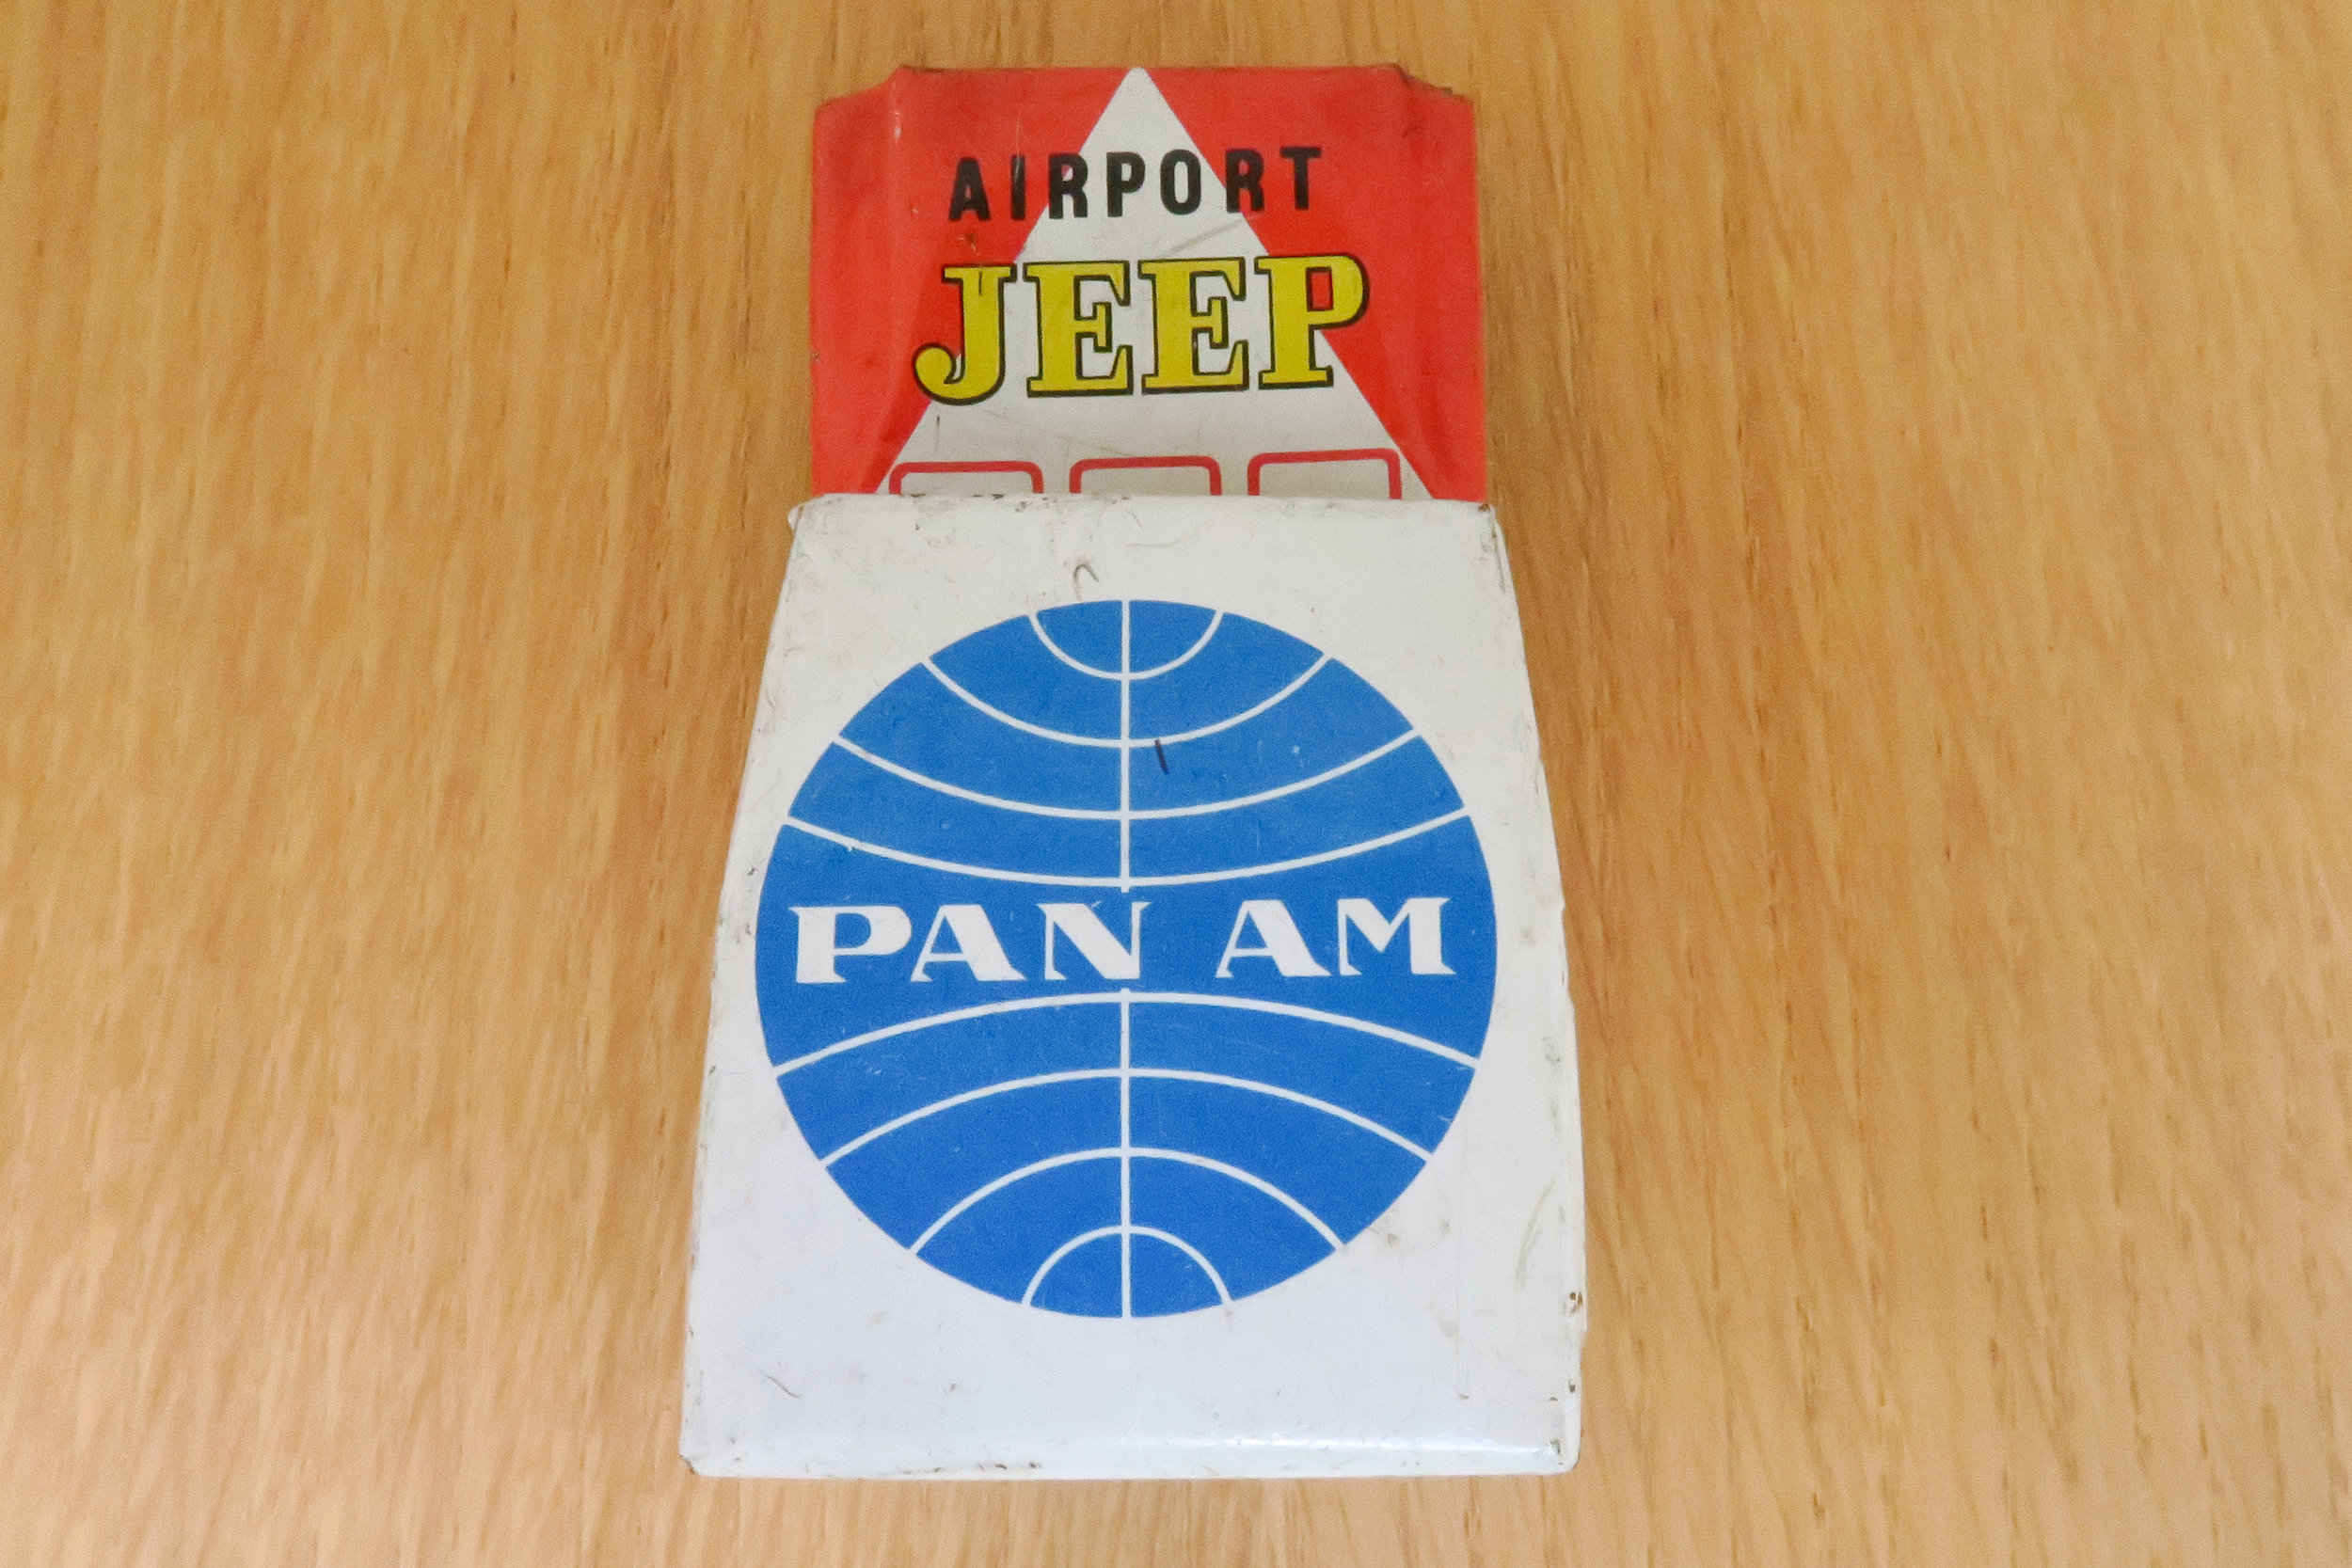 Pan Am Airport Jeep - Friction Toy